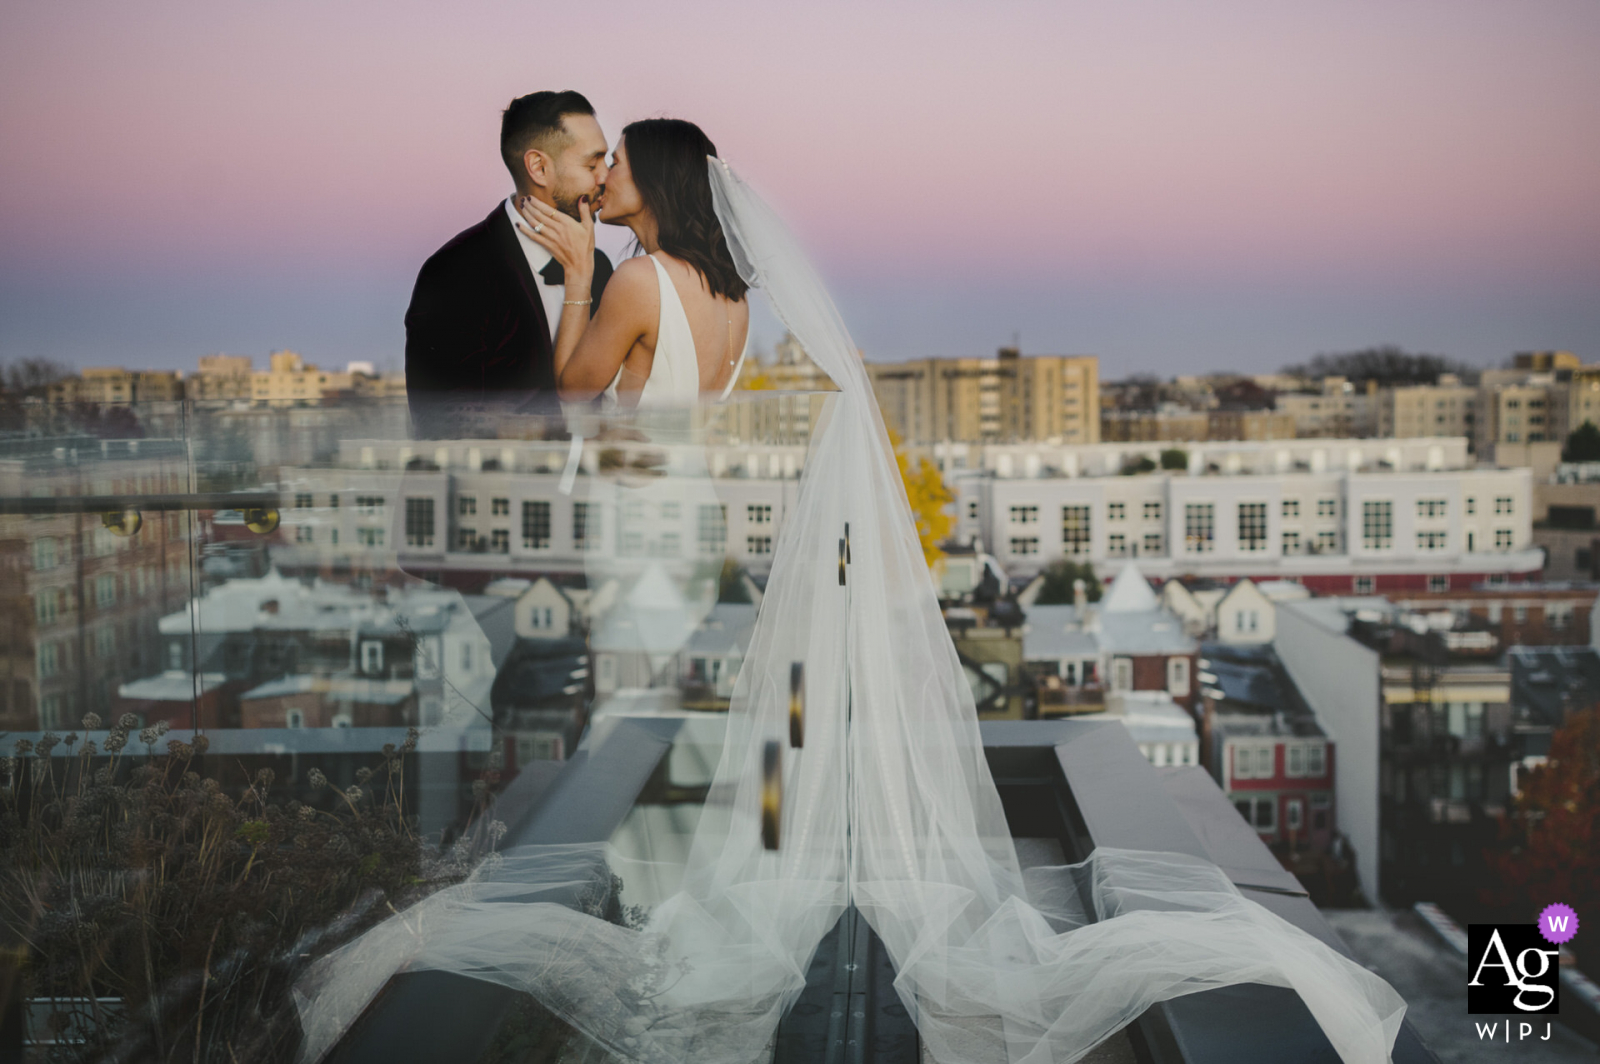 The Line, Washington DC creative couple wedding portrait with the feeling of Floating like clouds in the city